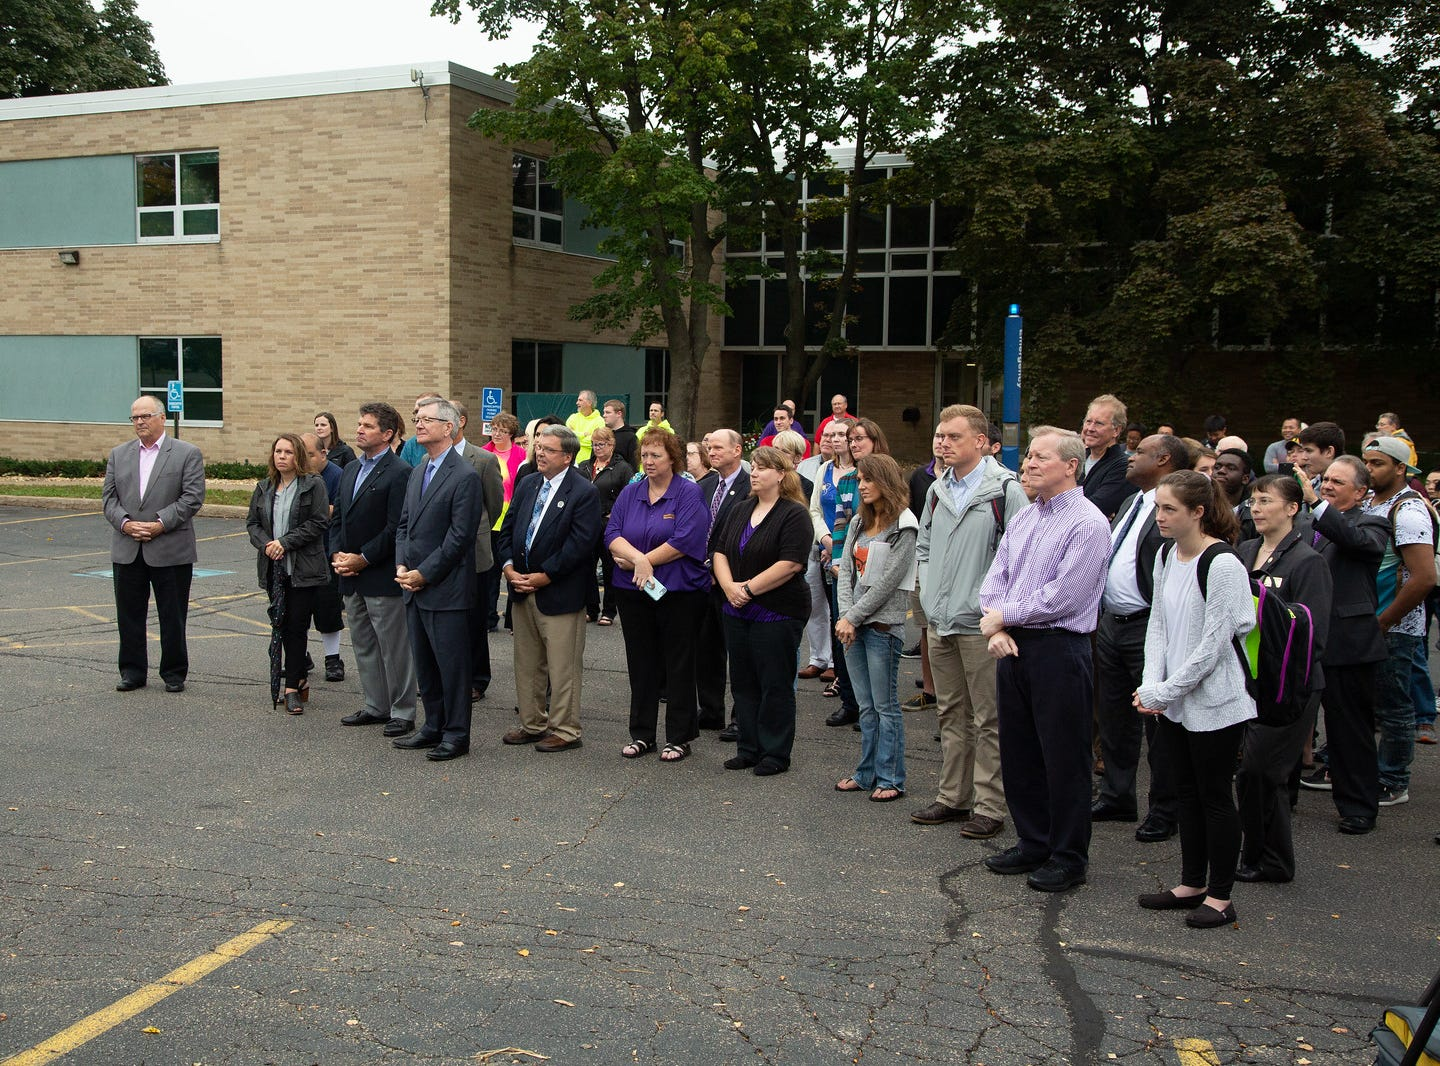 About 100 students, faculty, staff and community members attended the Sept. 19 sign unveiling at UW-Stevens Point at Wausau.